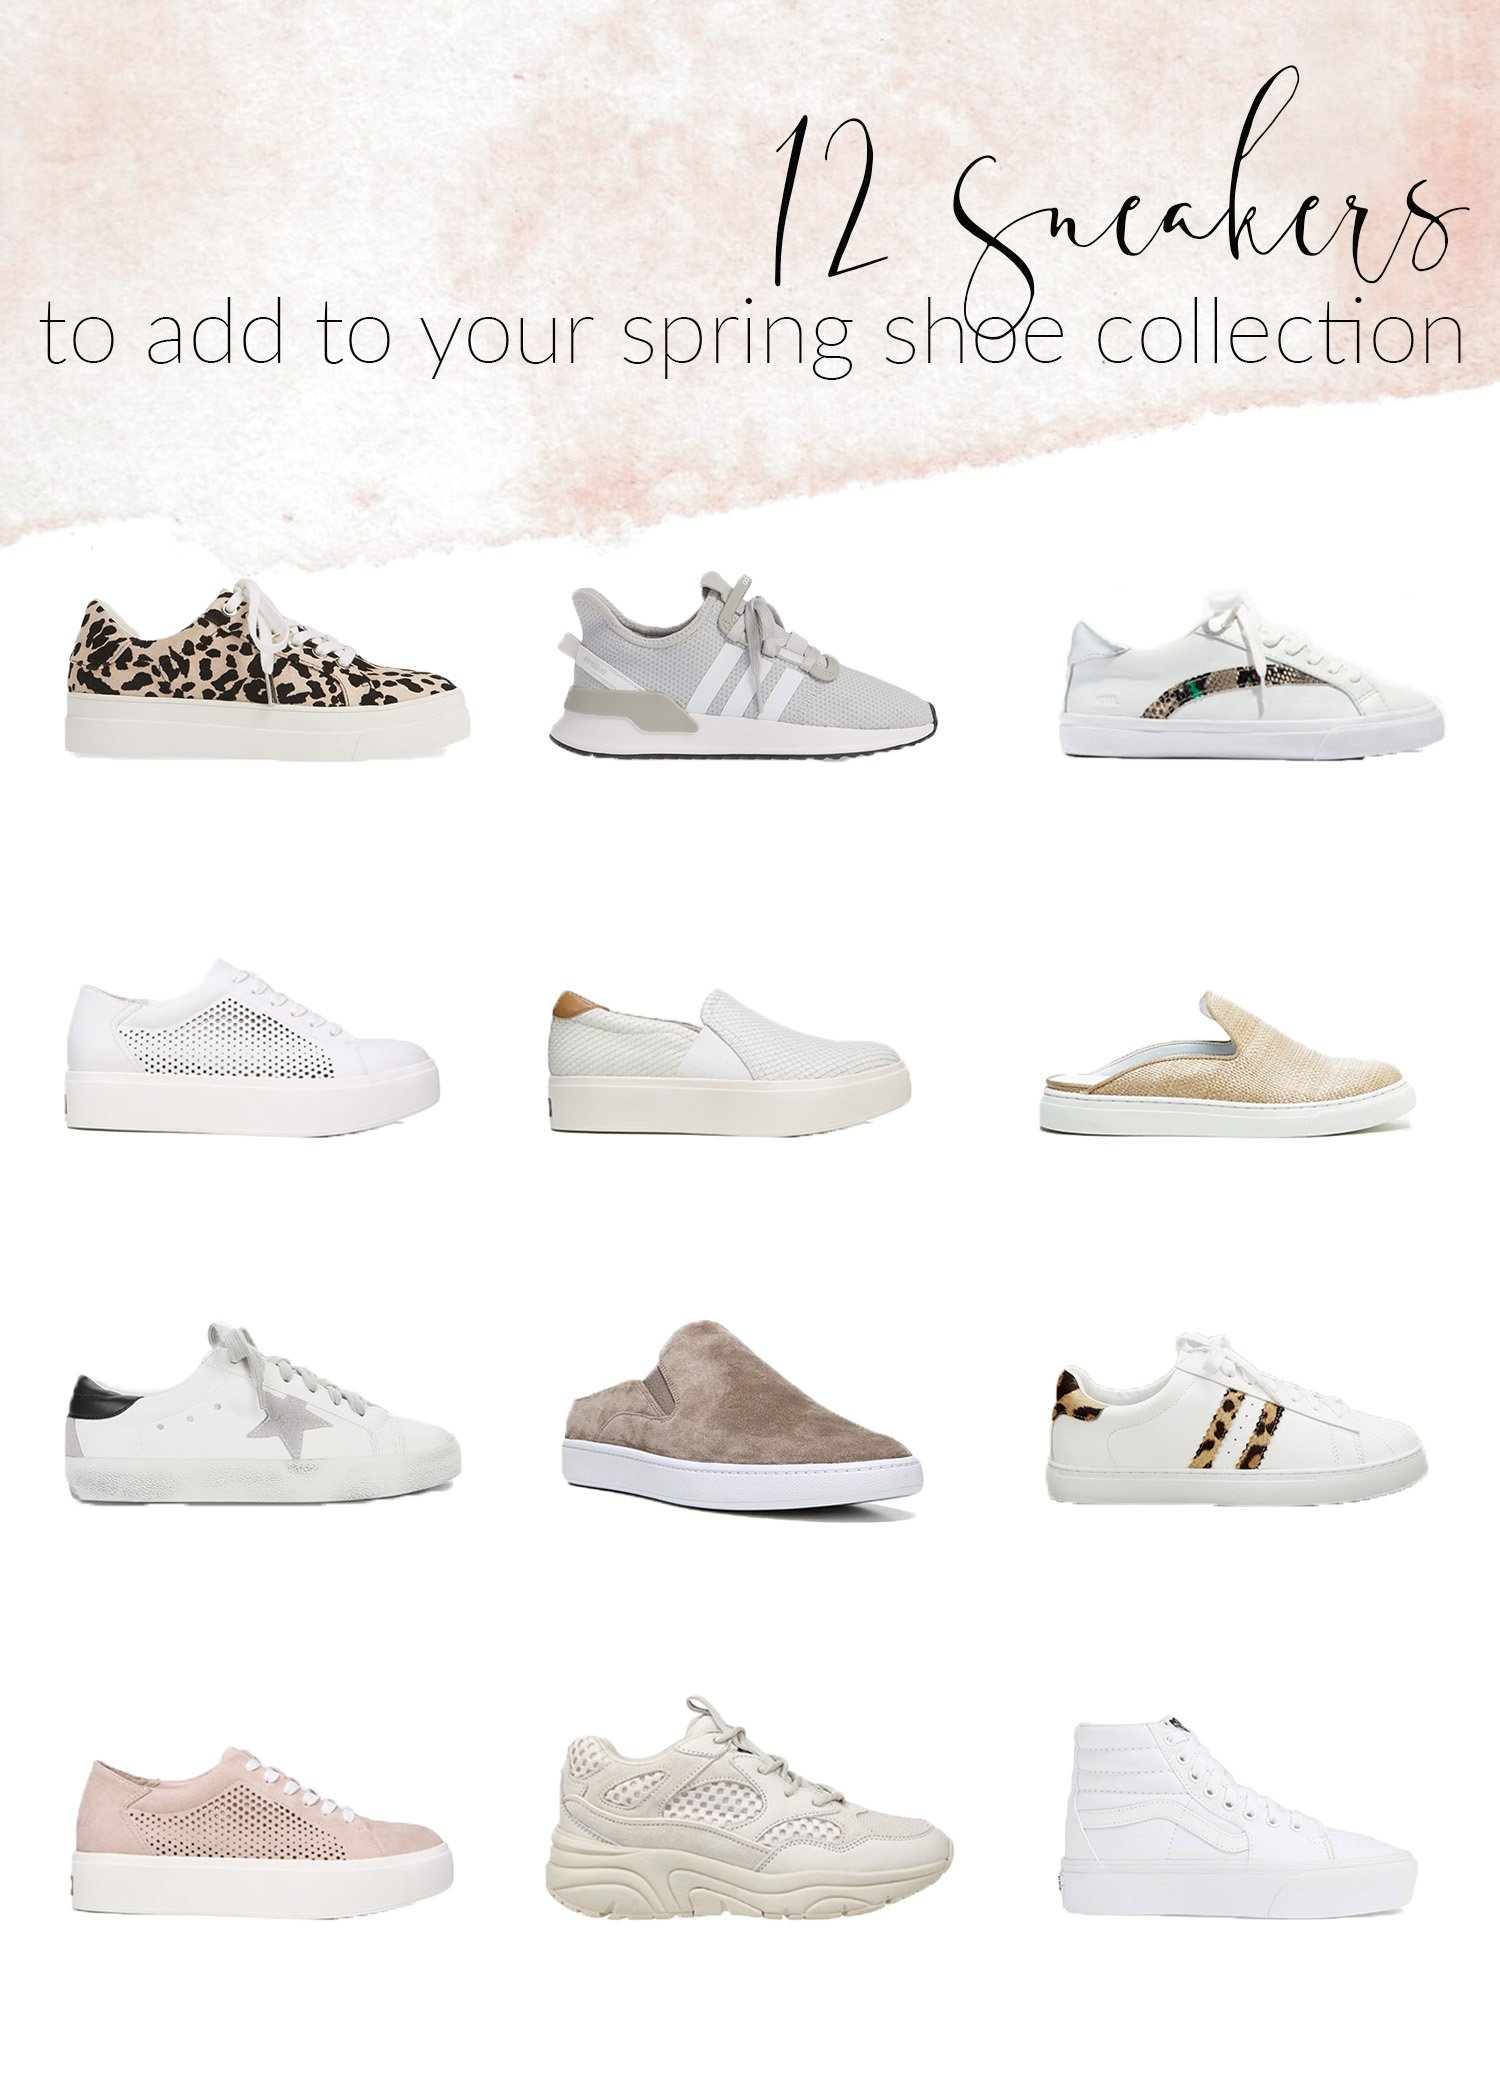 Sneakers to add to your spring shoe collection